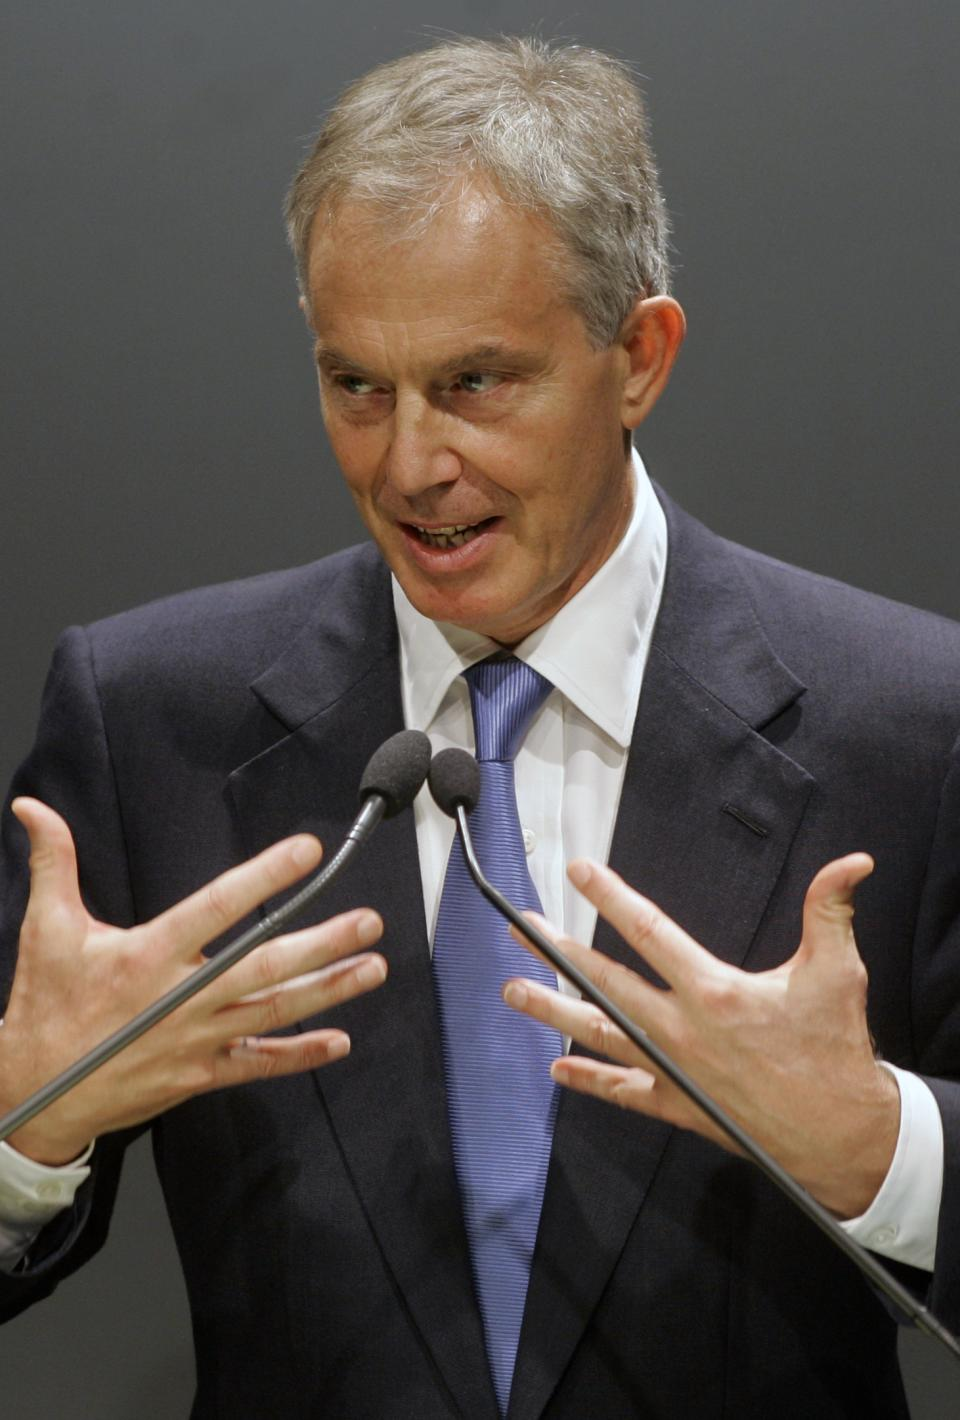 Former British Prime Minister Tony Blair delivers a speech during a lecture with students about education at a university in Sao Paulo, Brazil, Tuesday, Oct. 26, 2010. (AP Photo/Nelson Antoine)